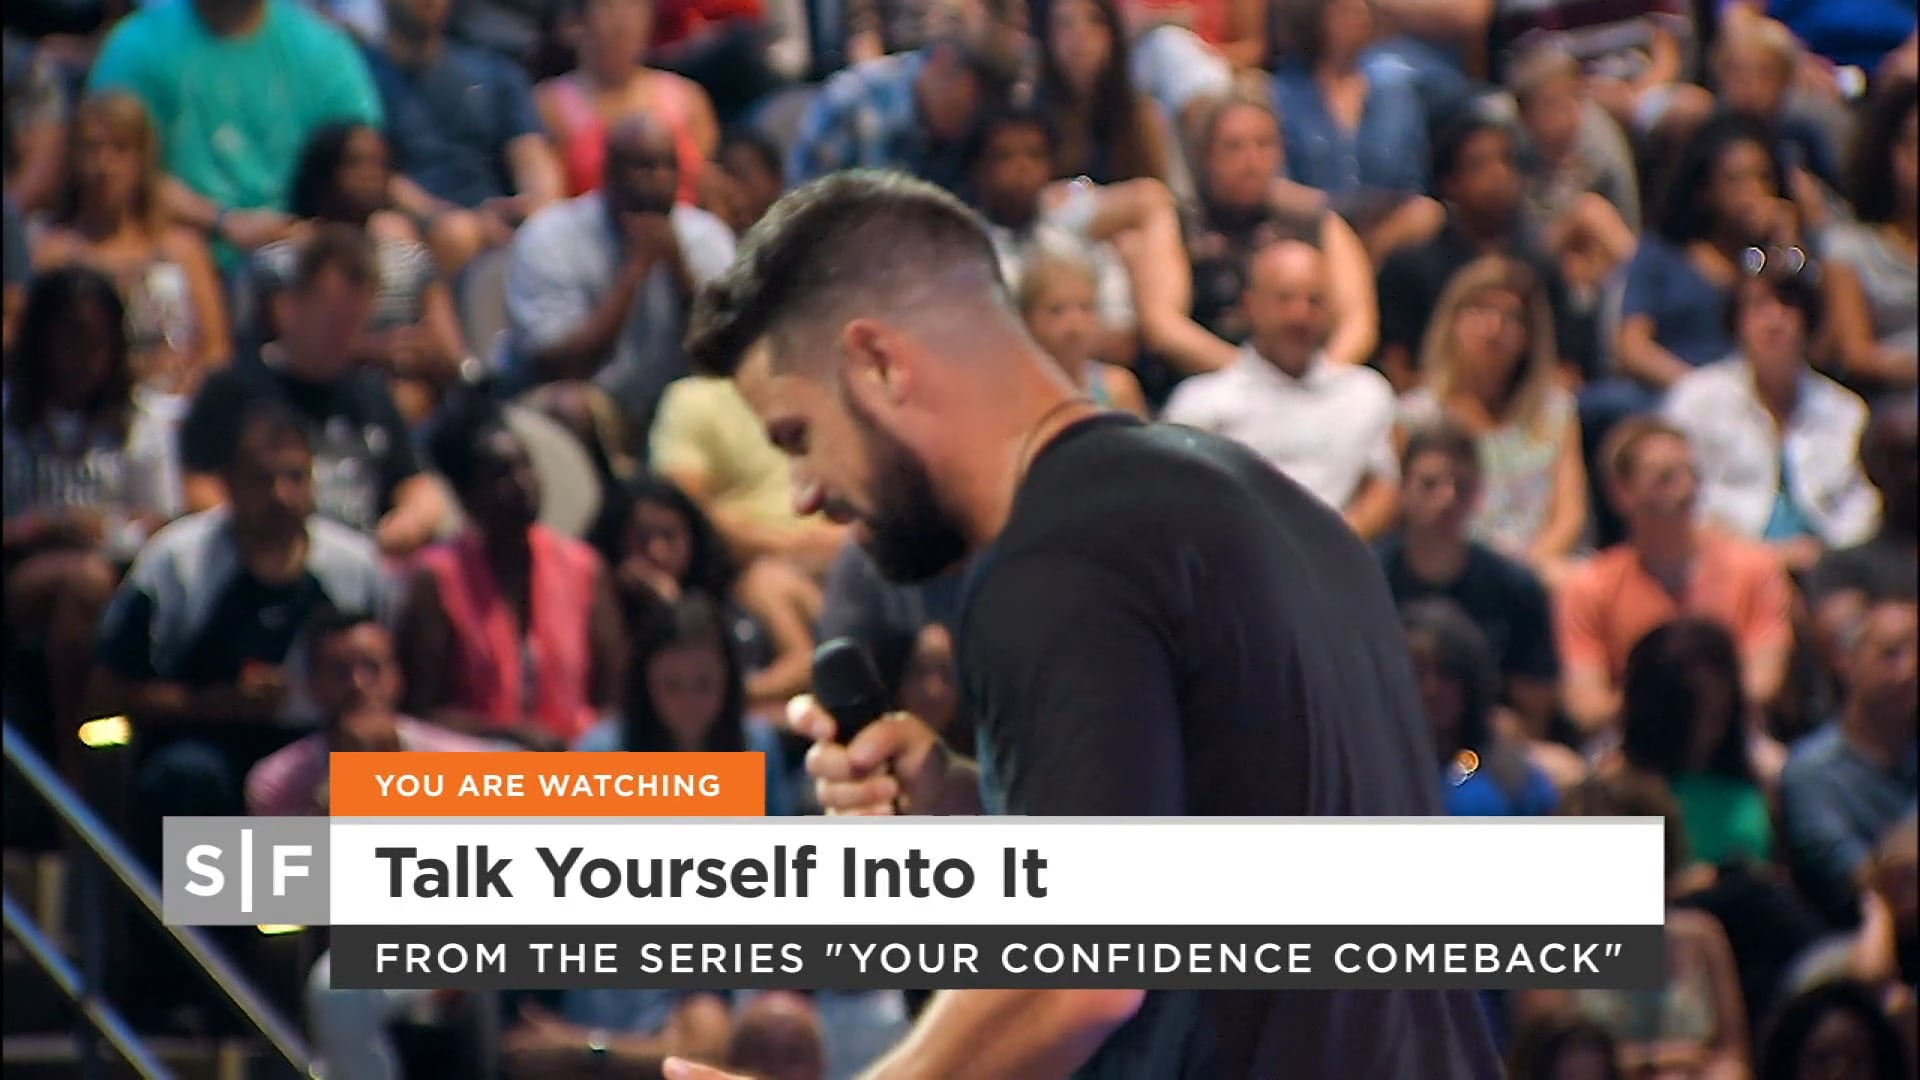 Watch Talk Yourself Into It Part 2